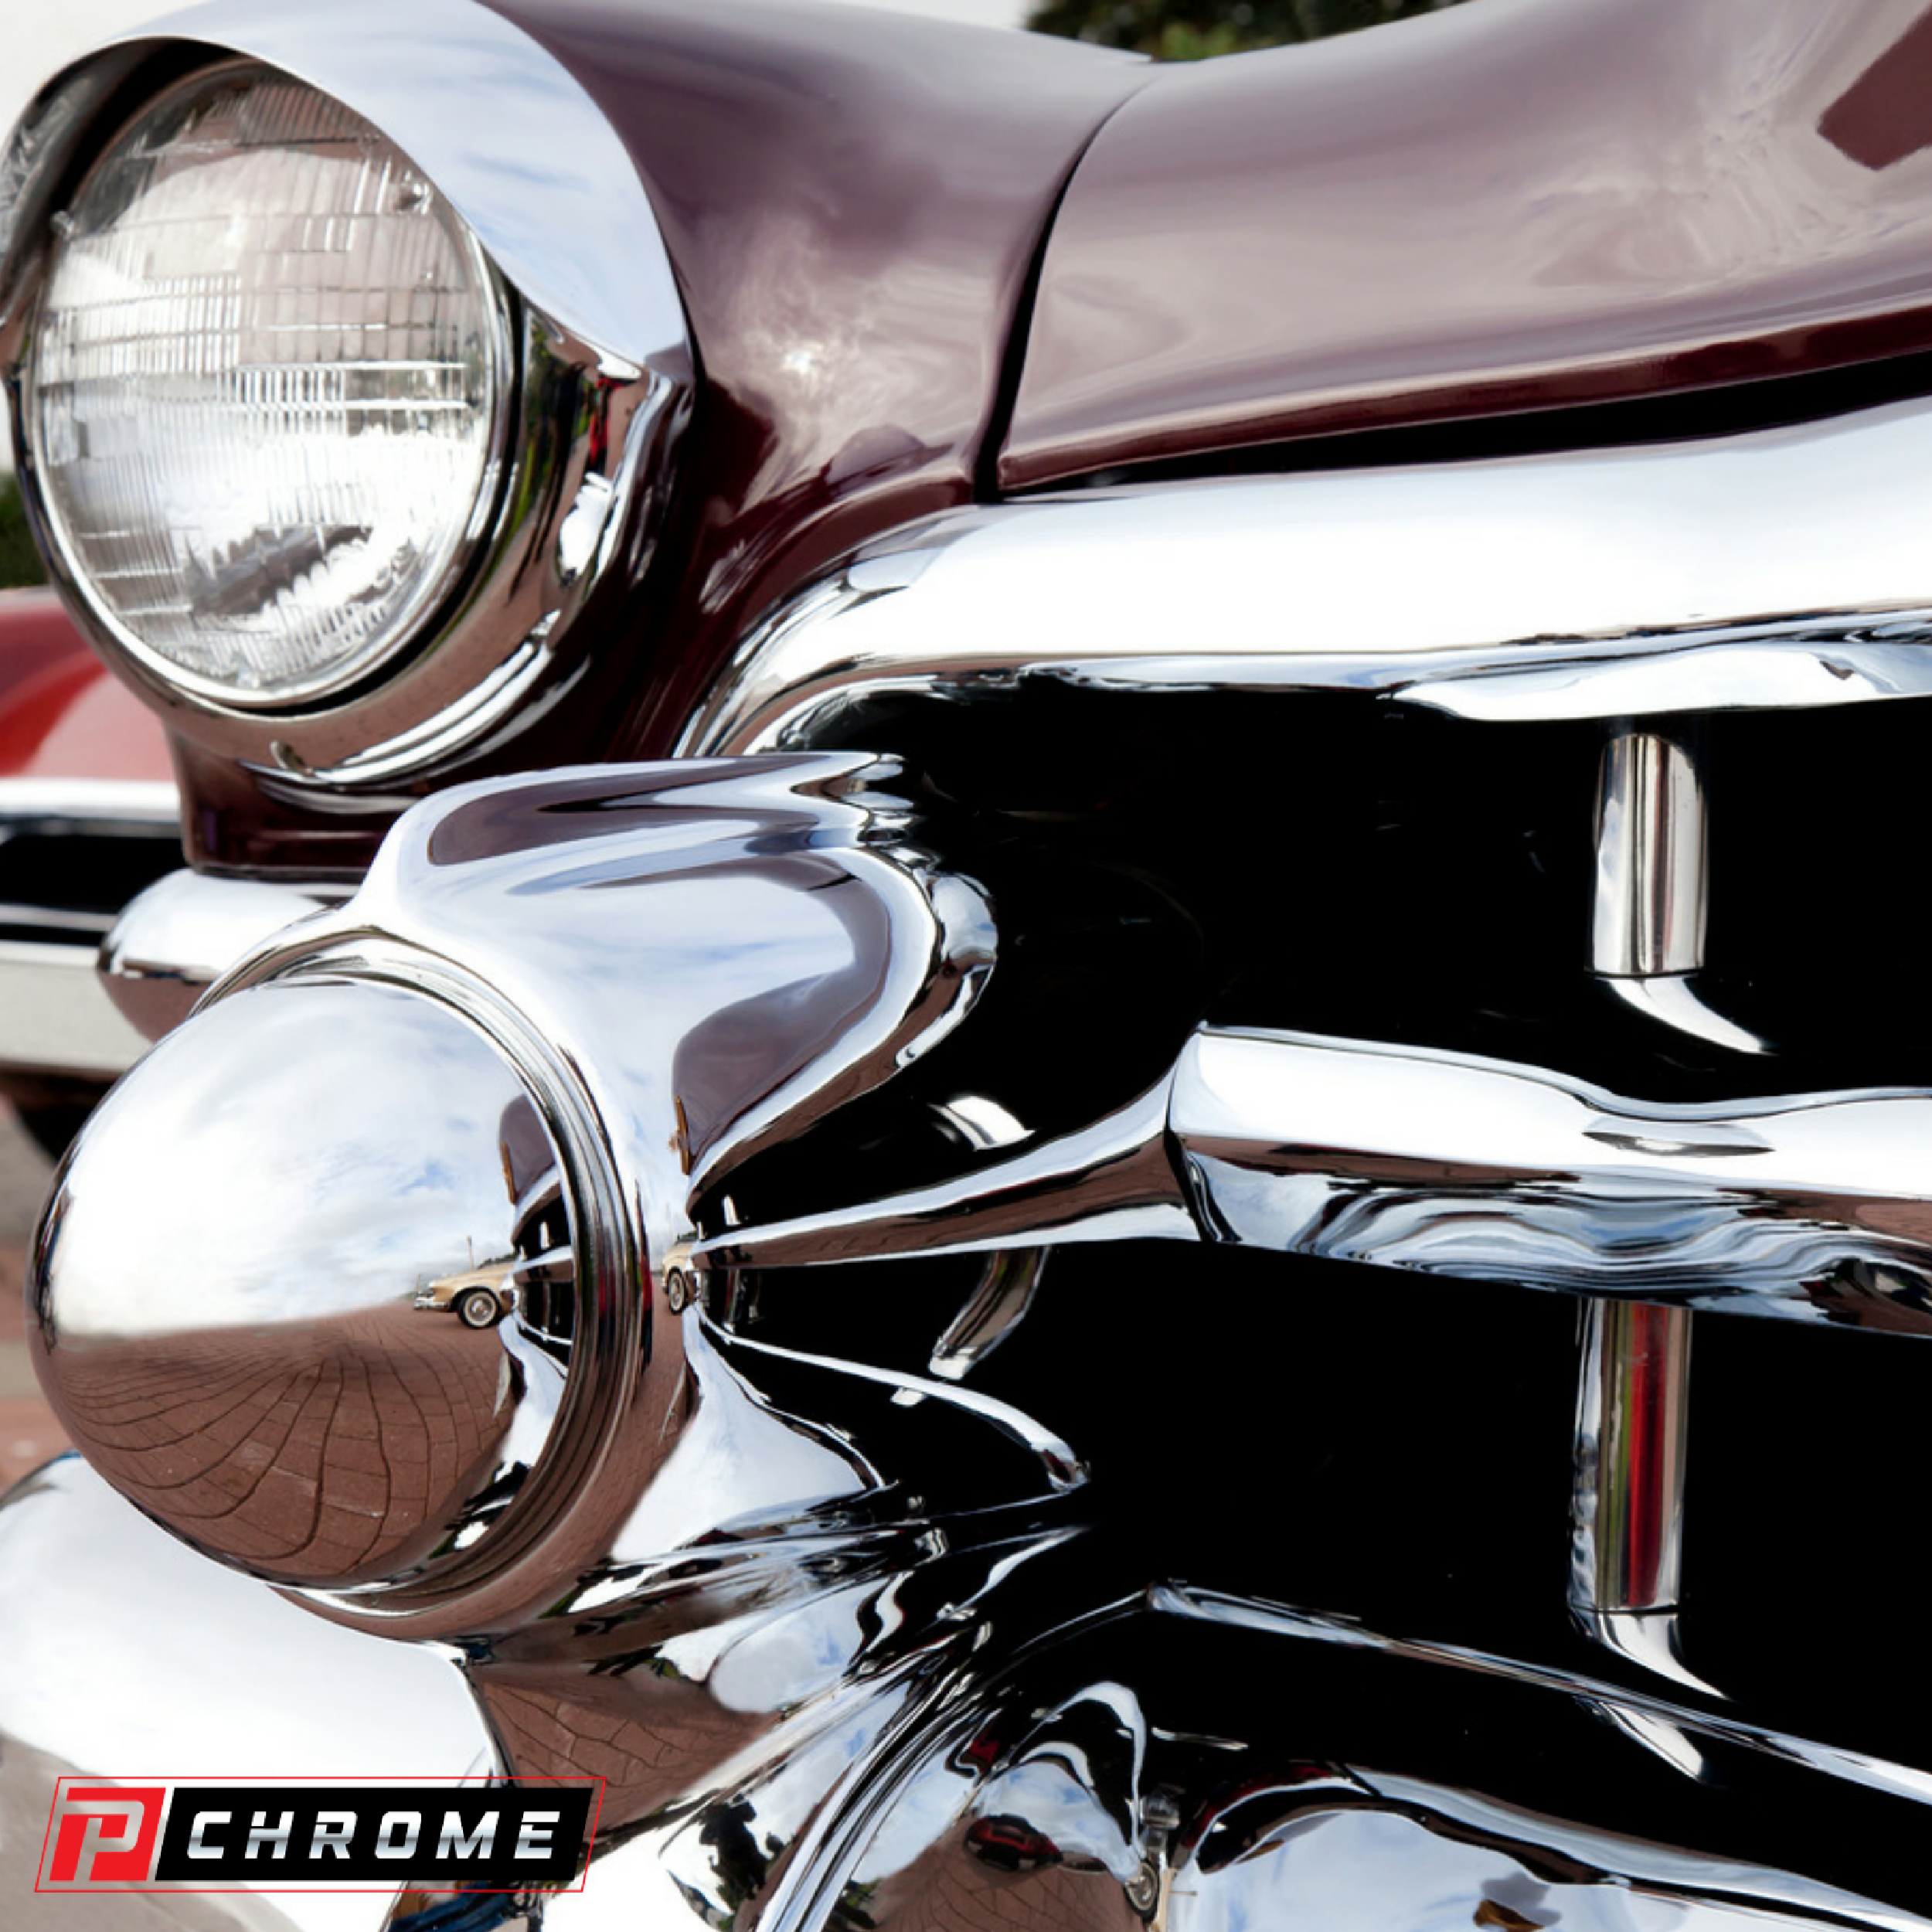 Chrome Repair and Restoration - PChrome - Spray On Chrome System